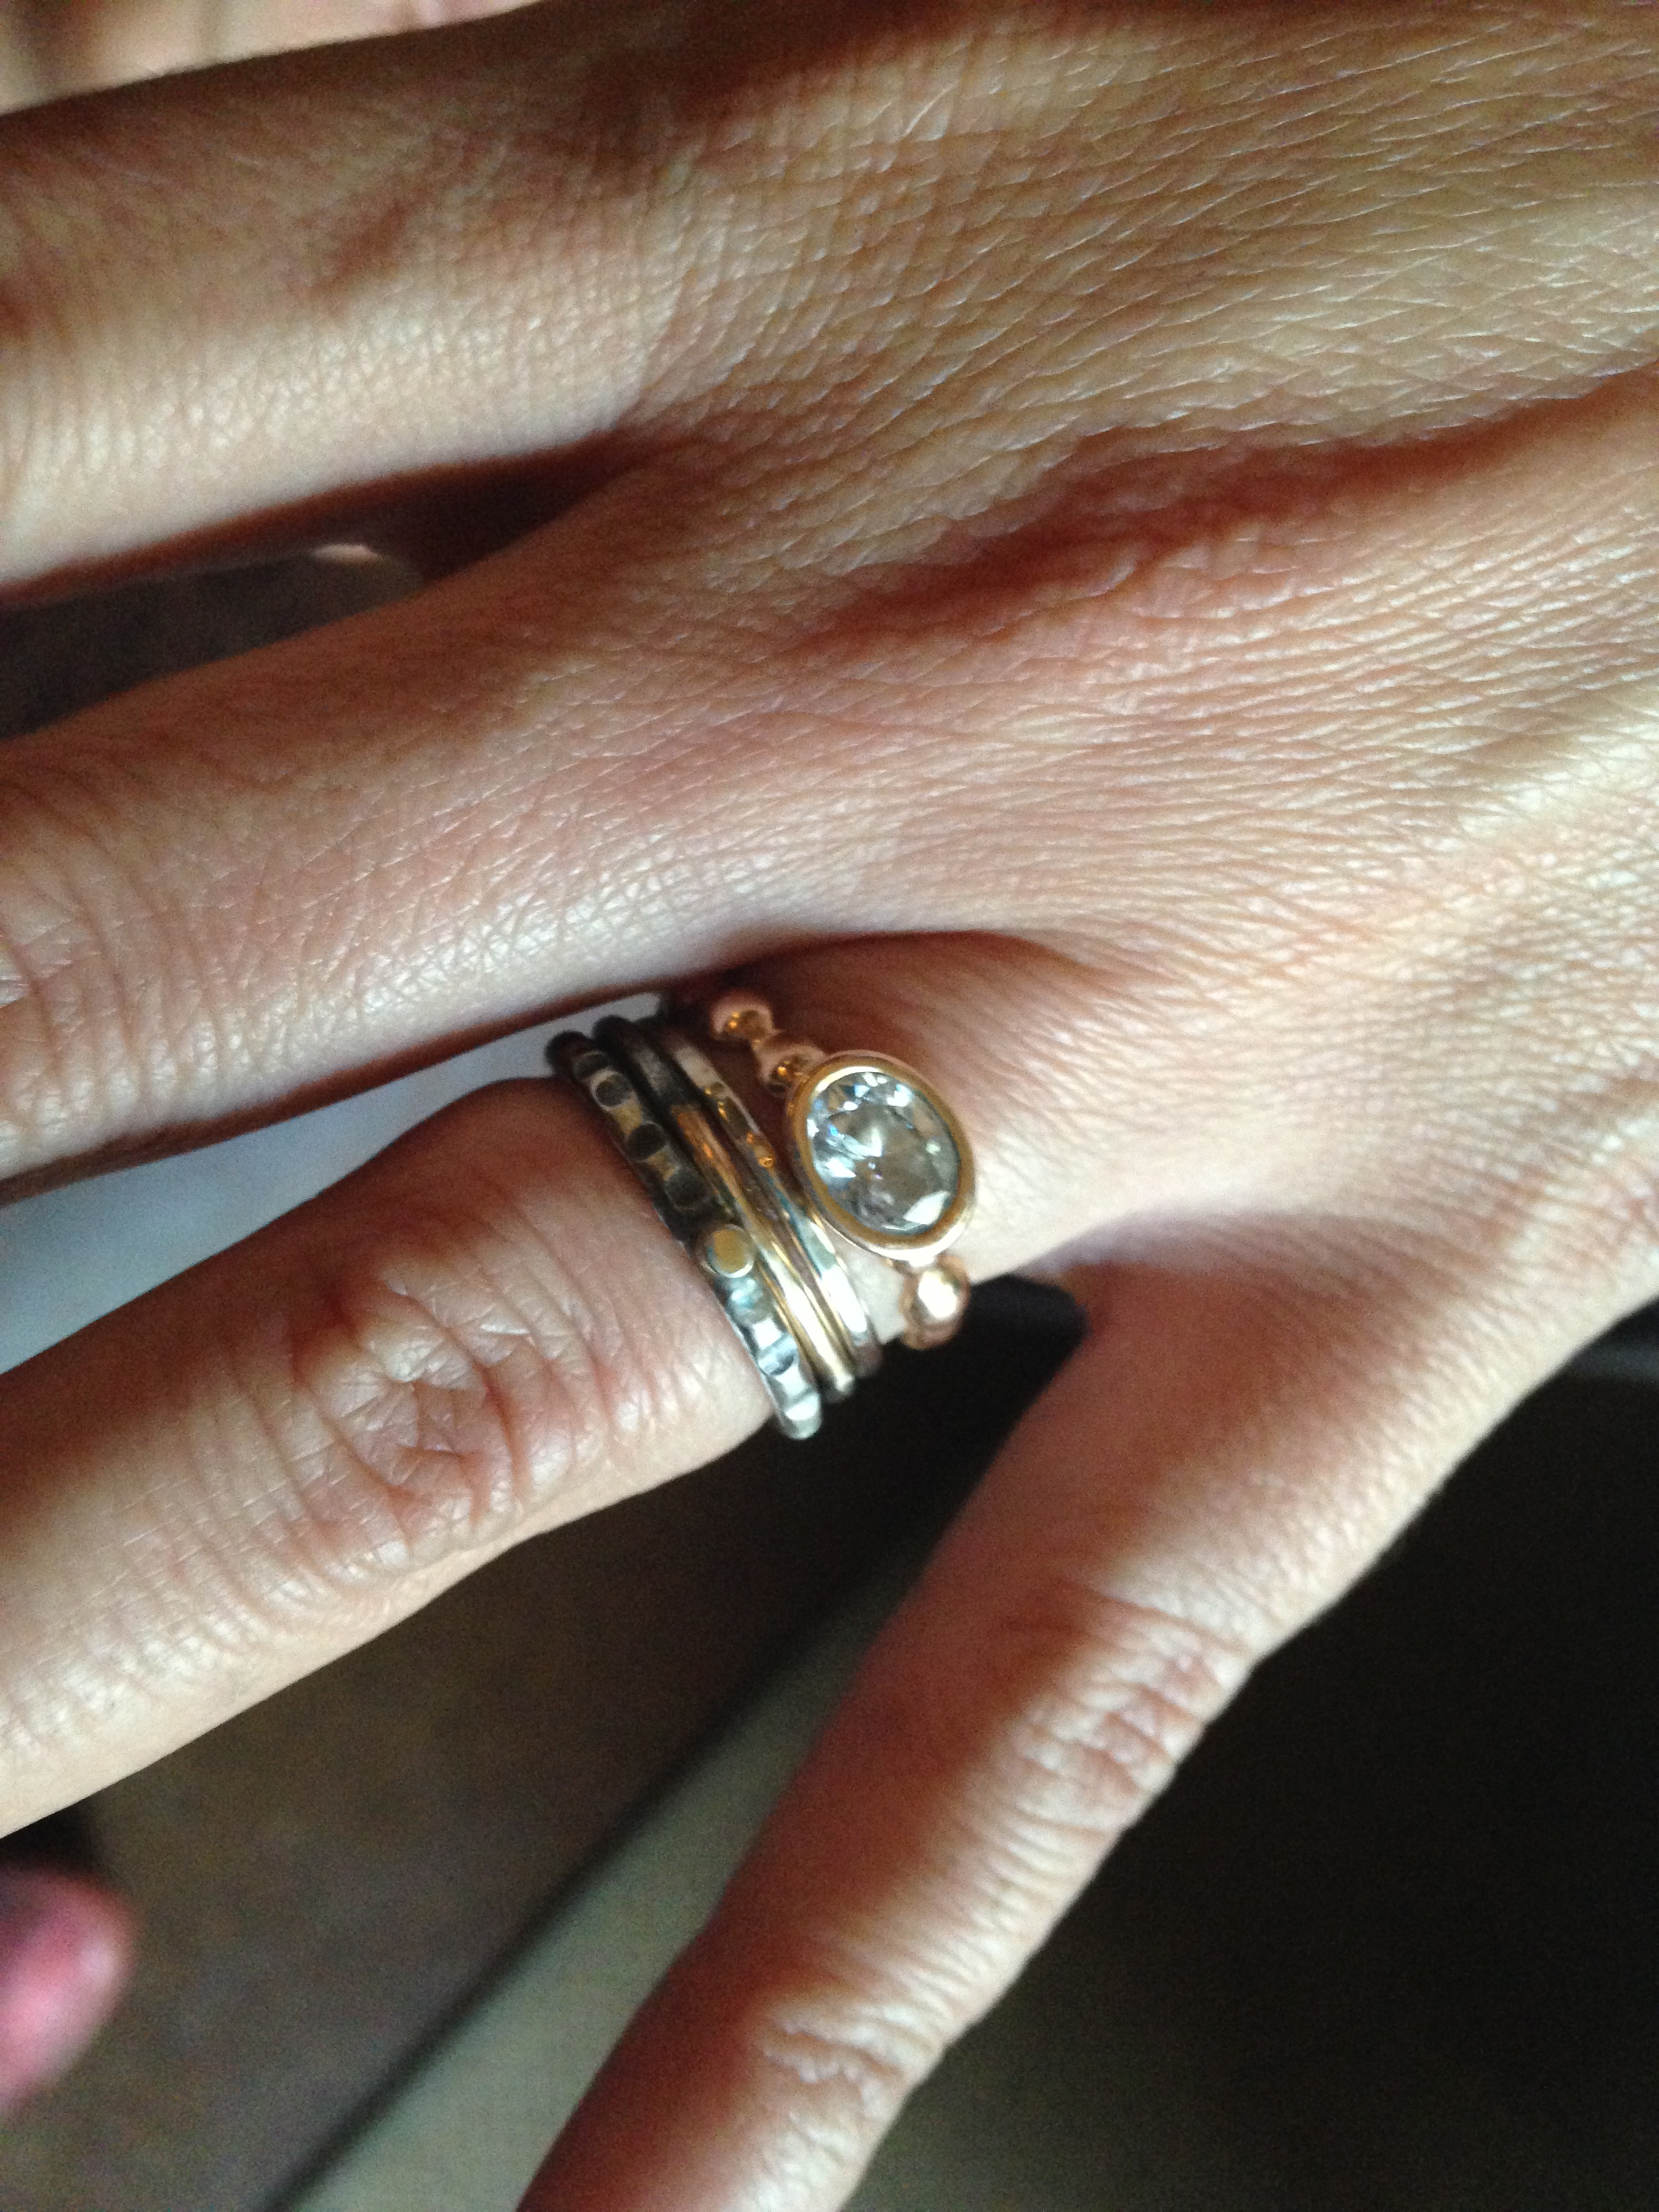 carla's engagement ring (made by another jeweler) + stacking wedding bands. lovely contrast of the rose gold w/oxidized silver + yellow gold.